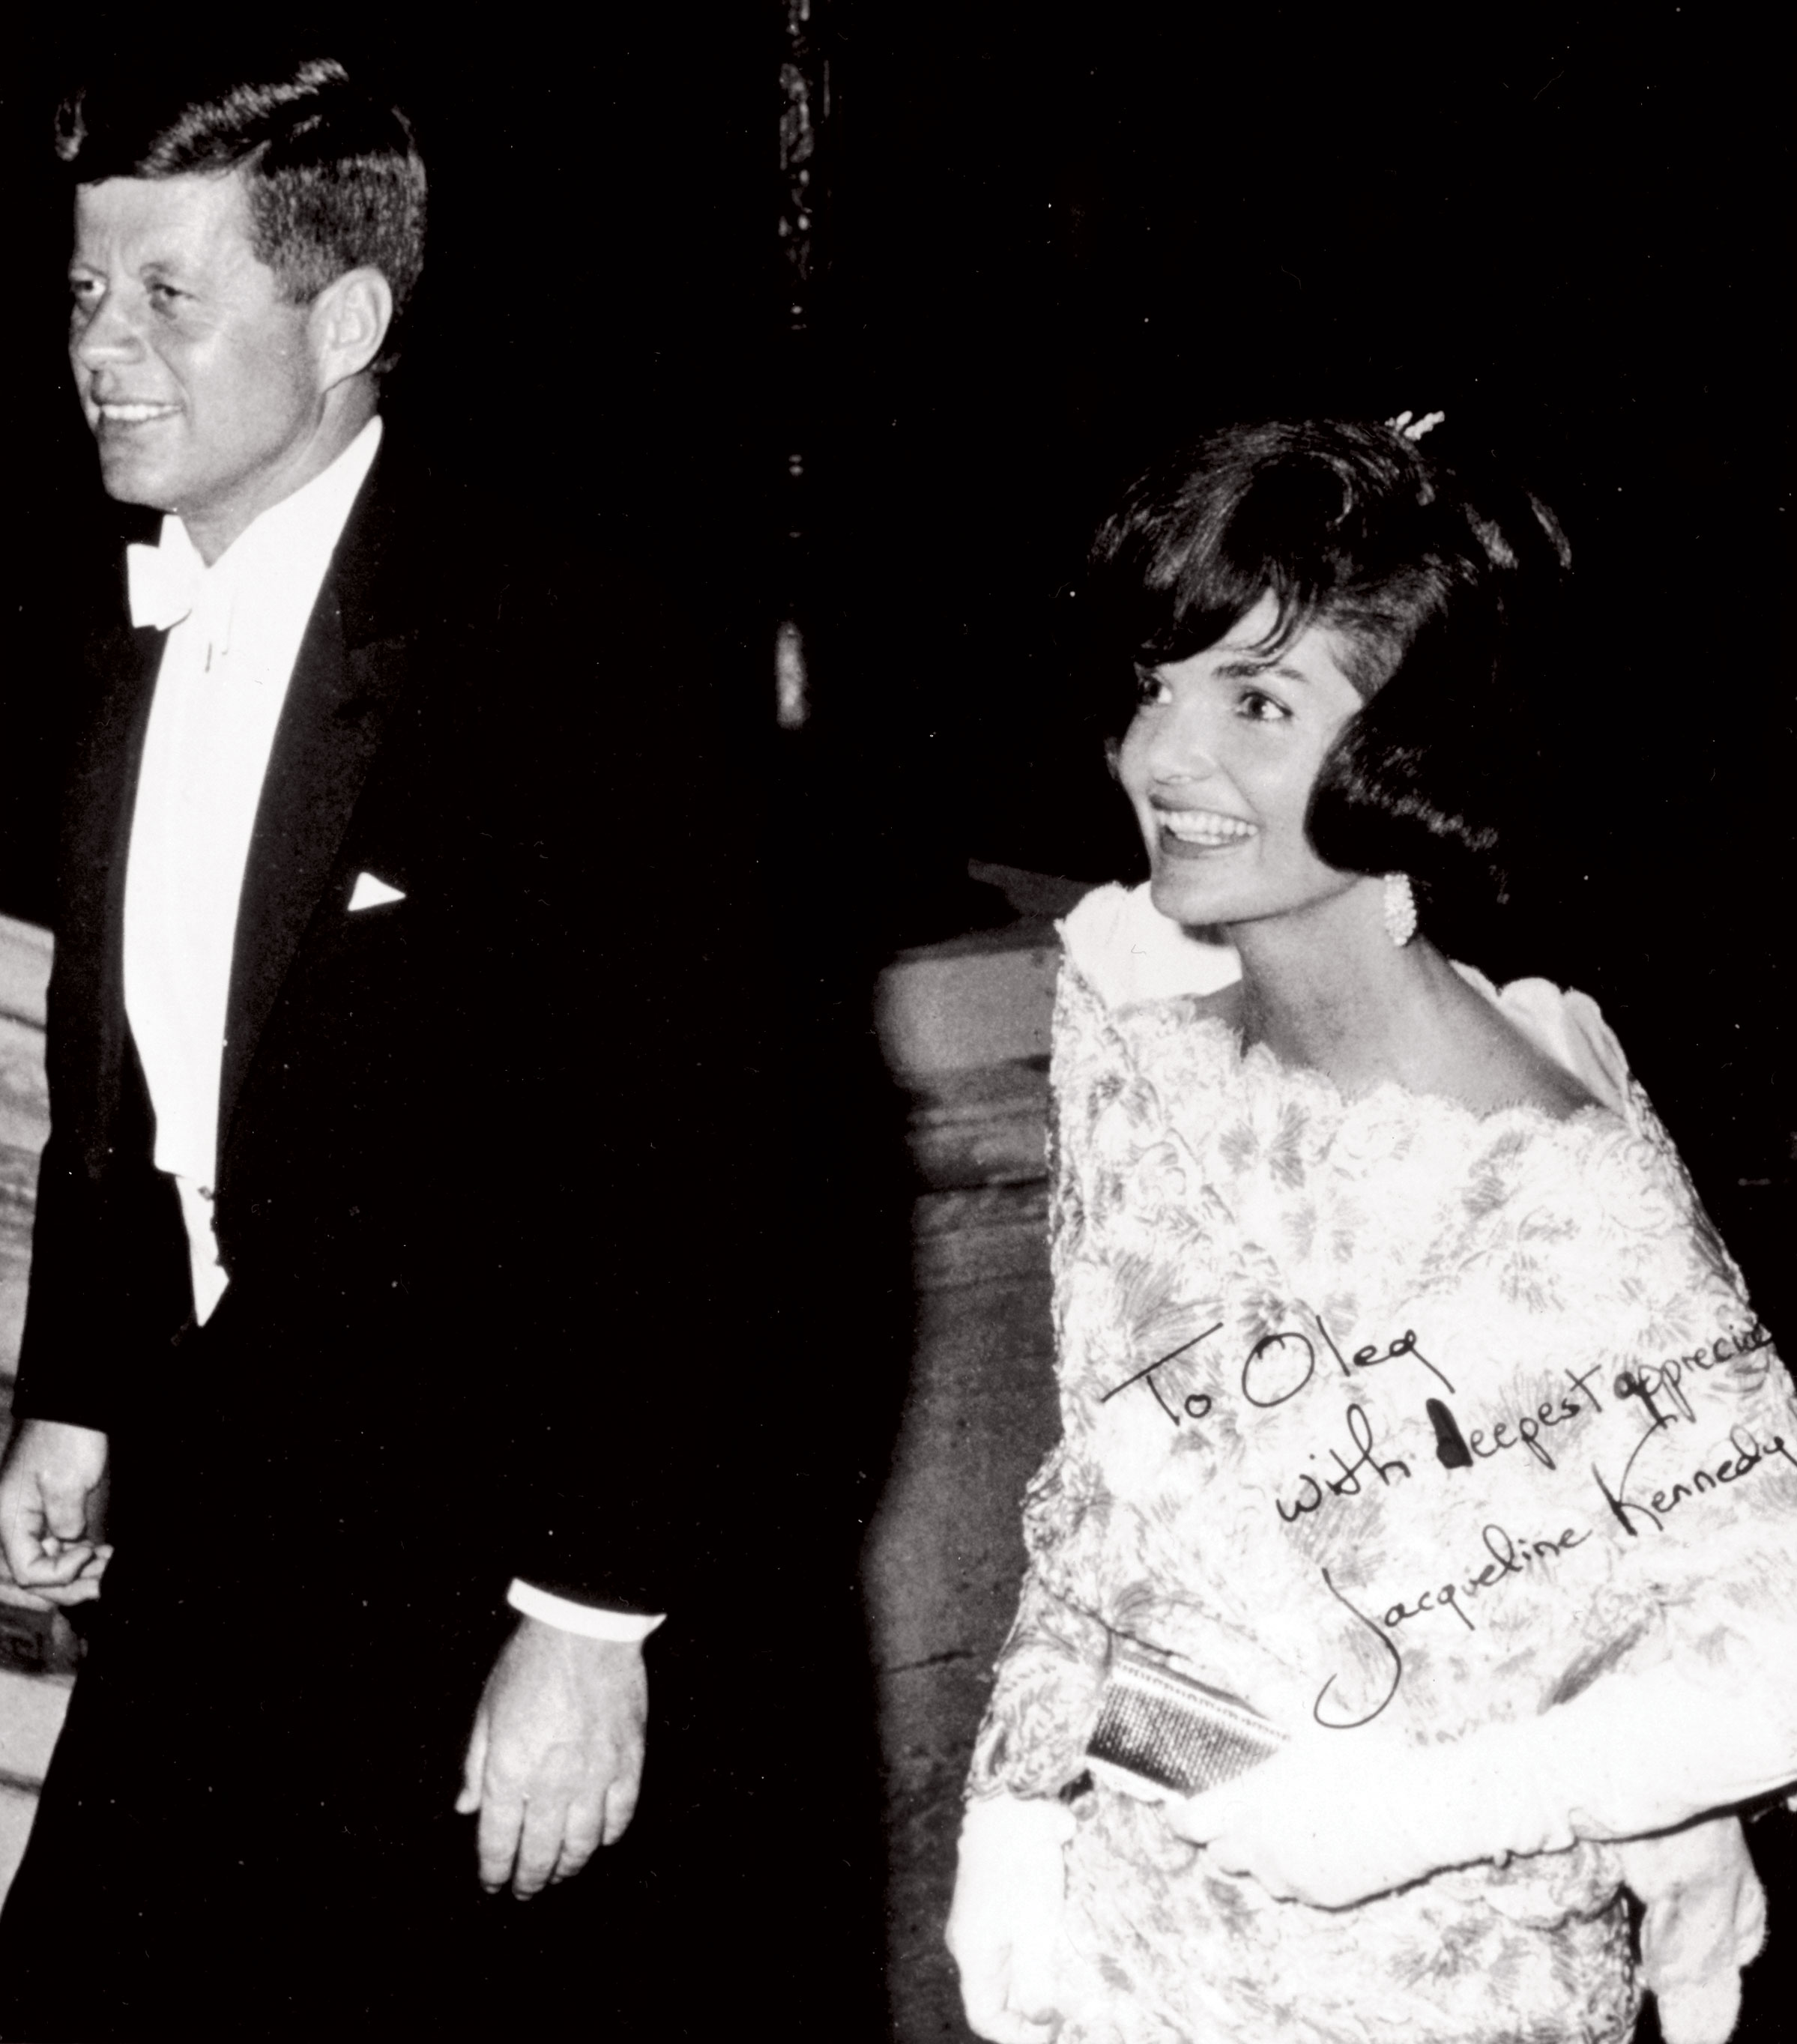 President John F. Kennedy and Jacqueline Kennedy Onassis in Oleg Cassini dress with note to designer